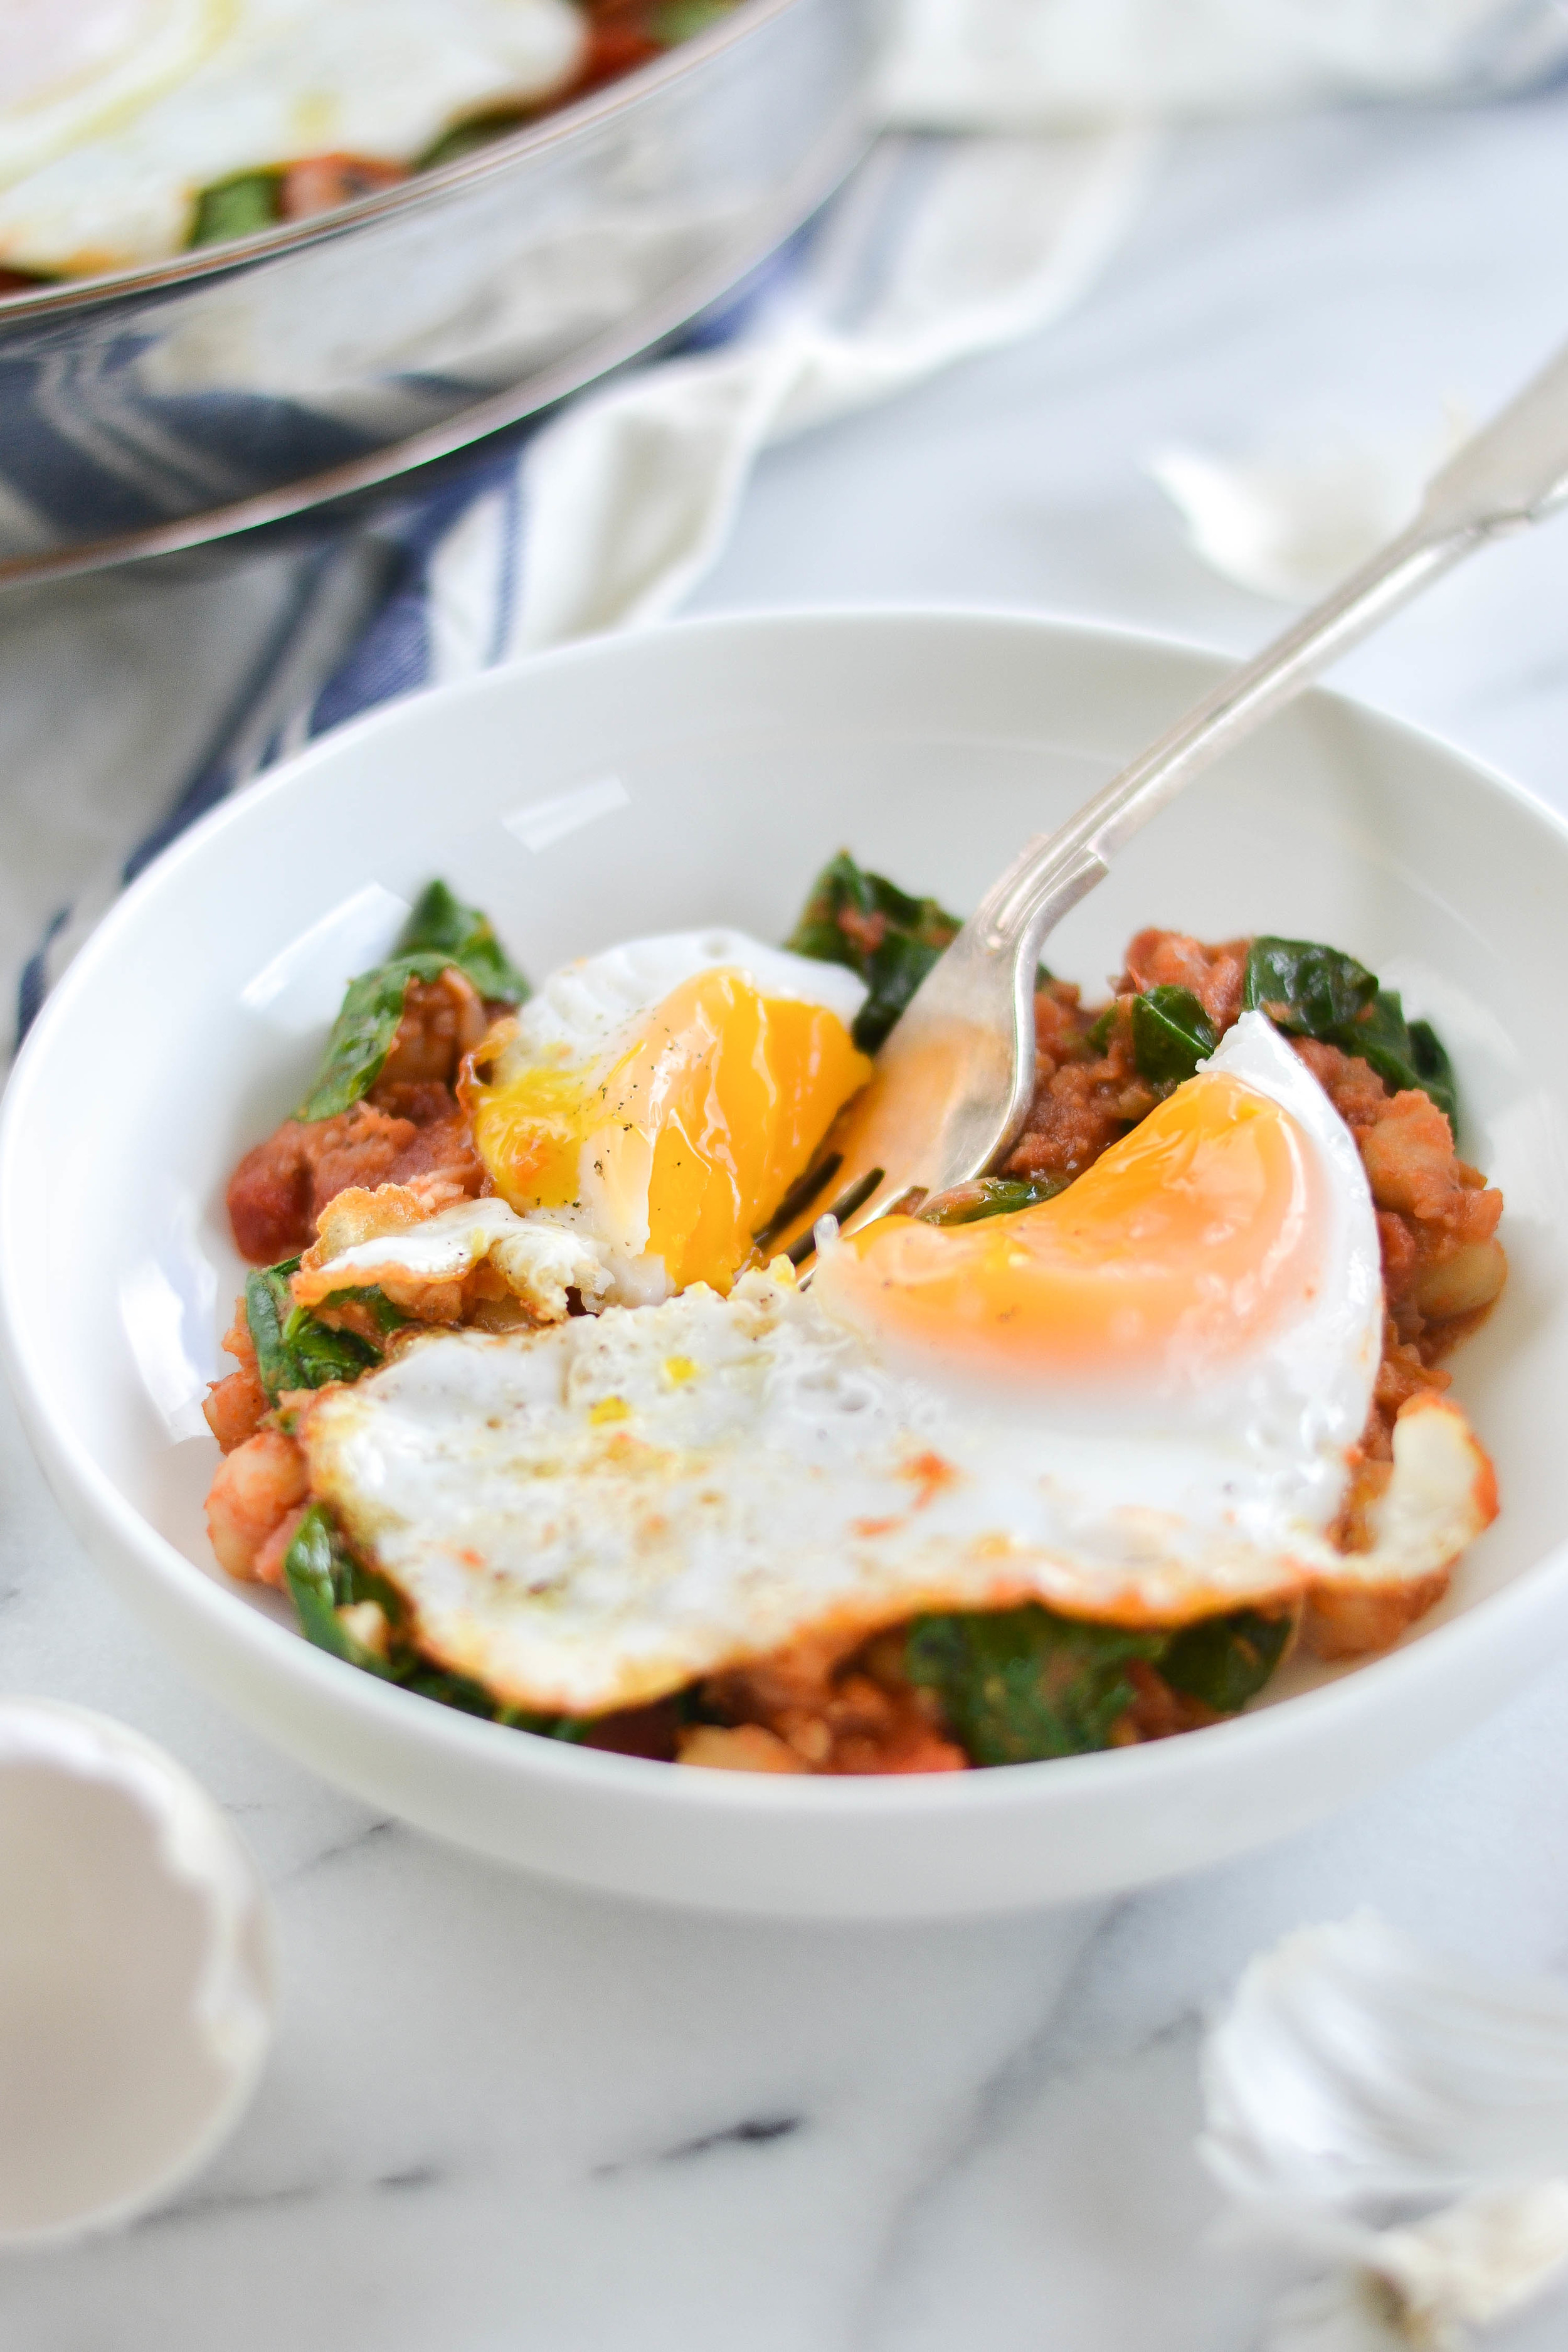 Vegetarian pantry dinner with spinach, eggs, and garbanzo beans. Perfect for meatless Monday from boxwoodavenue.com